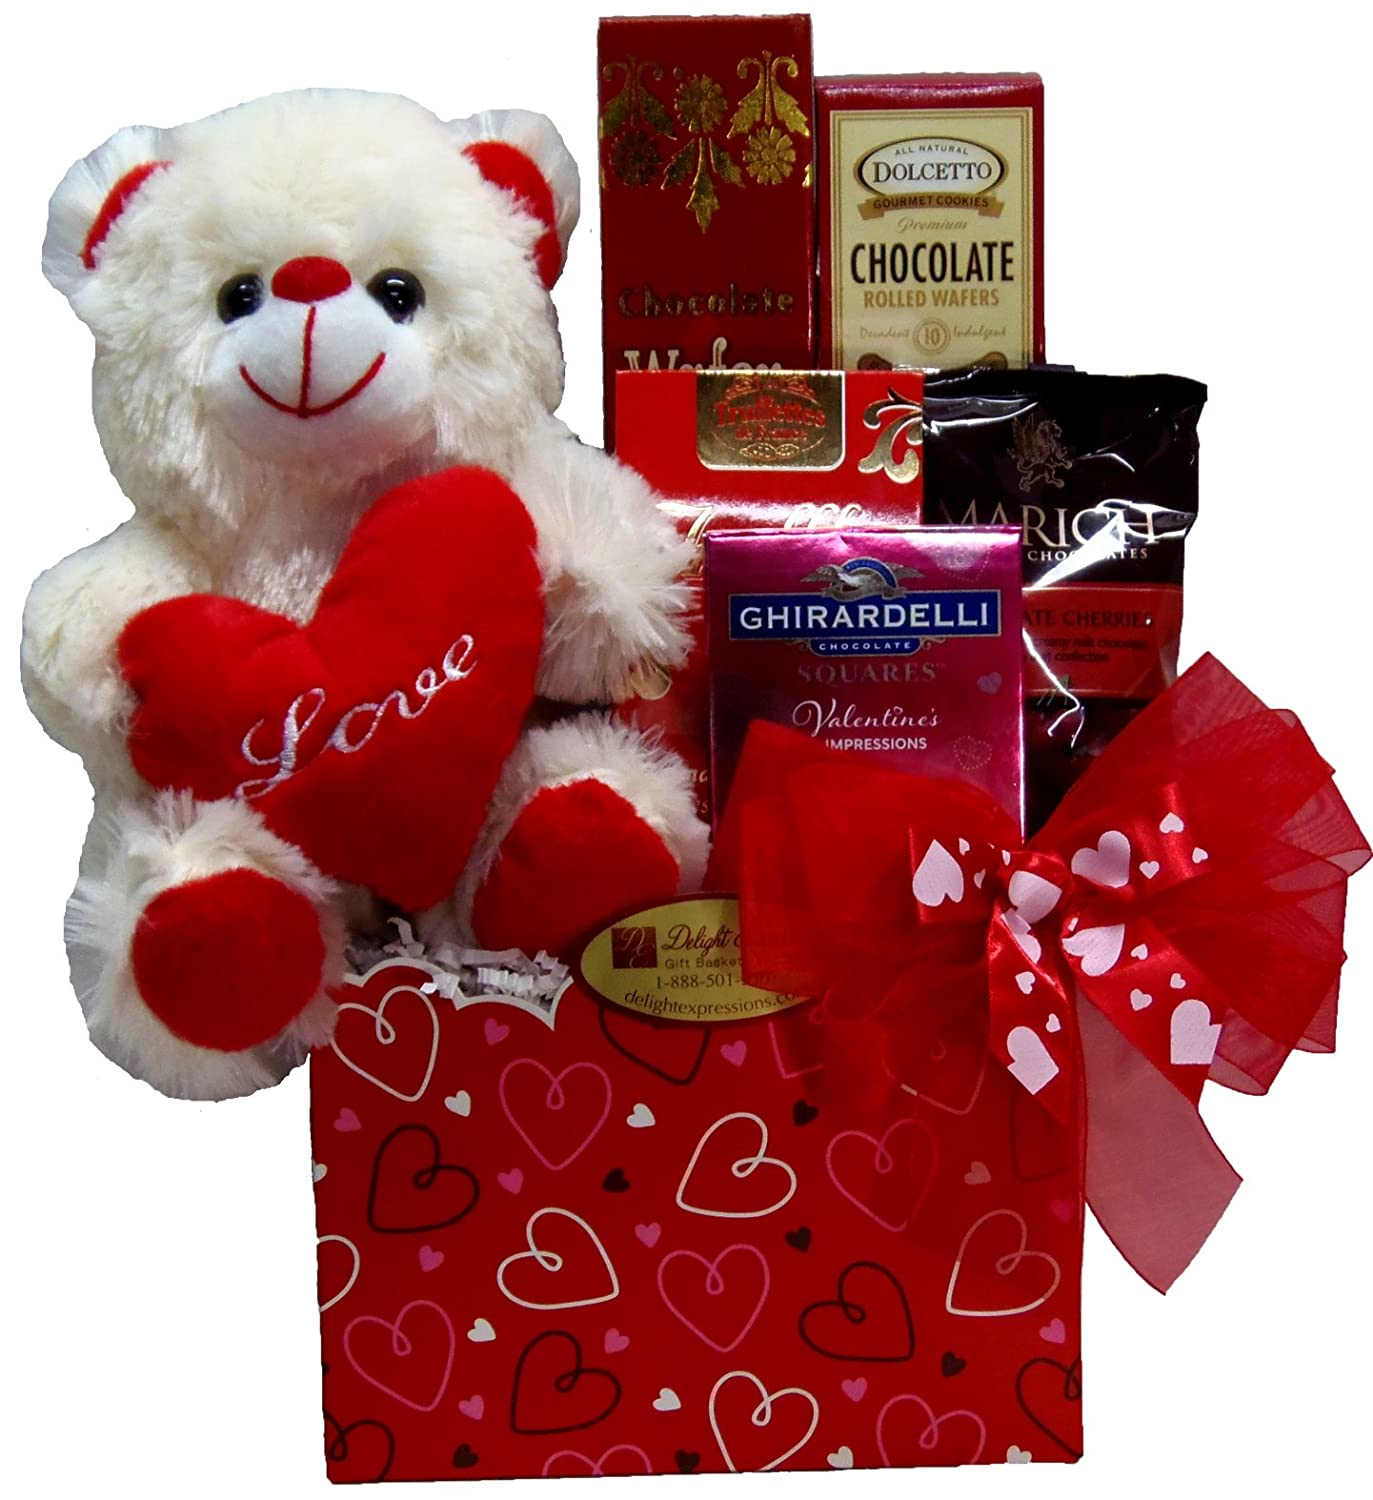 amazoncom delight expressions be mine valentines day gift box small a gift basket idea gourmet gift items grocery gourmet food